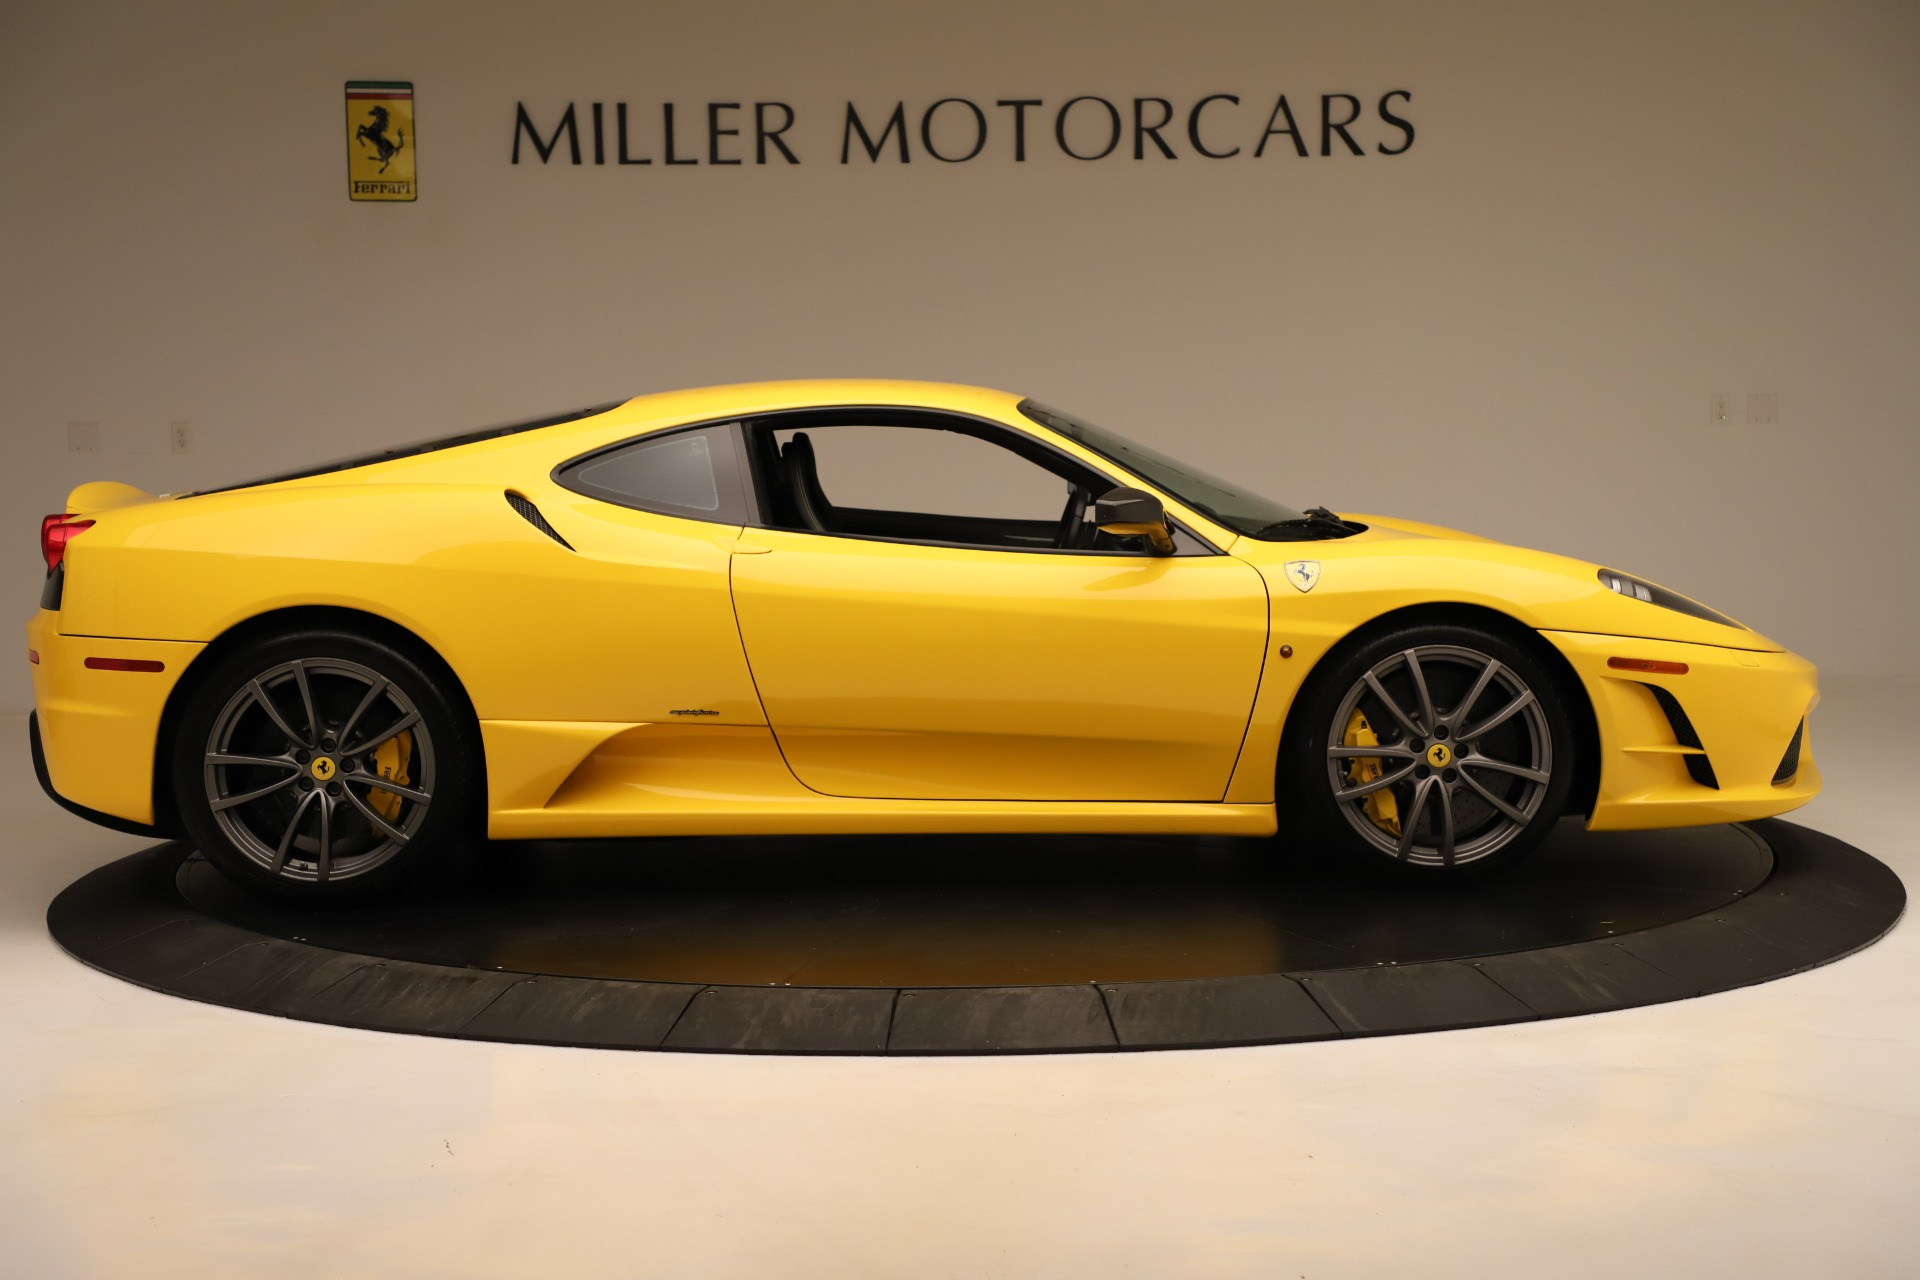 Used 2008 Ferrari F430 Scuderia For Sale In Greenwich, CT 3319_p9